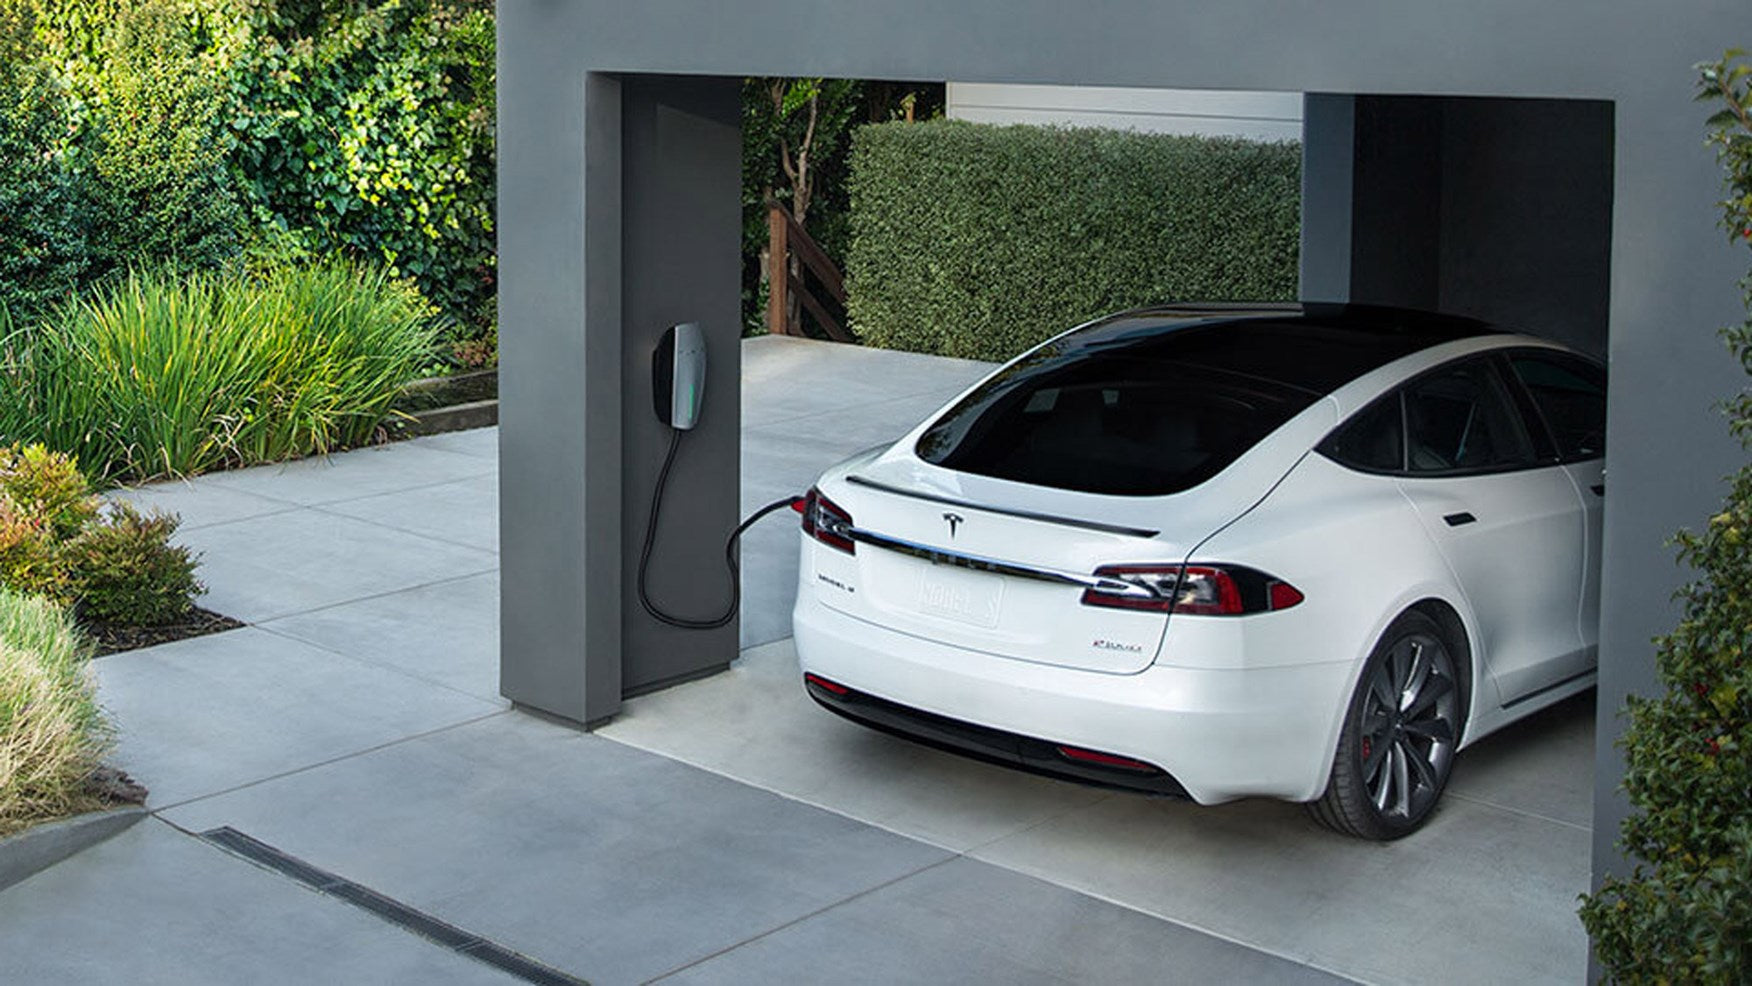 Tesla's 1 Million-Mile Battery May Increase Earnings With Virtual Power Plants